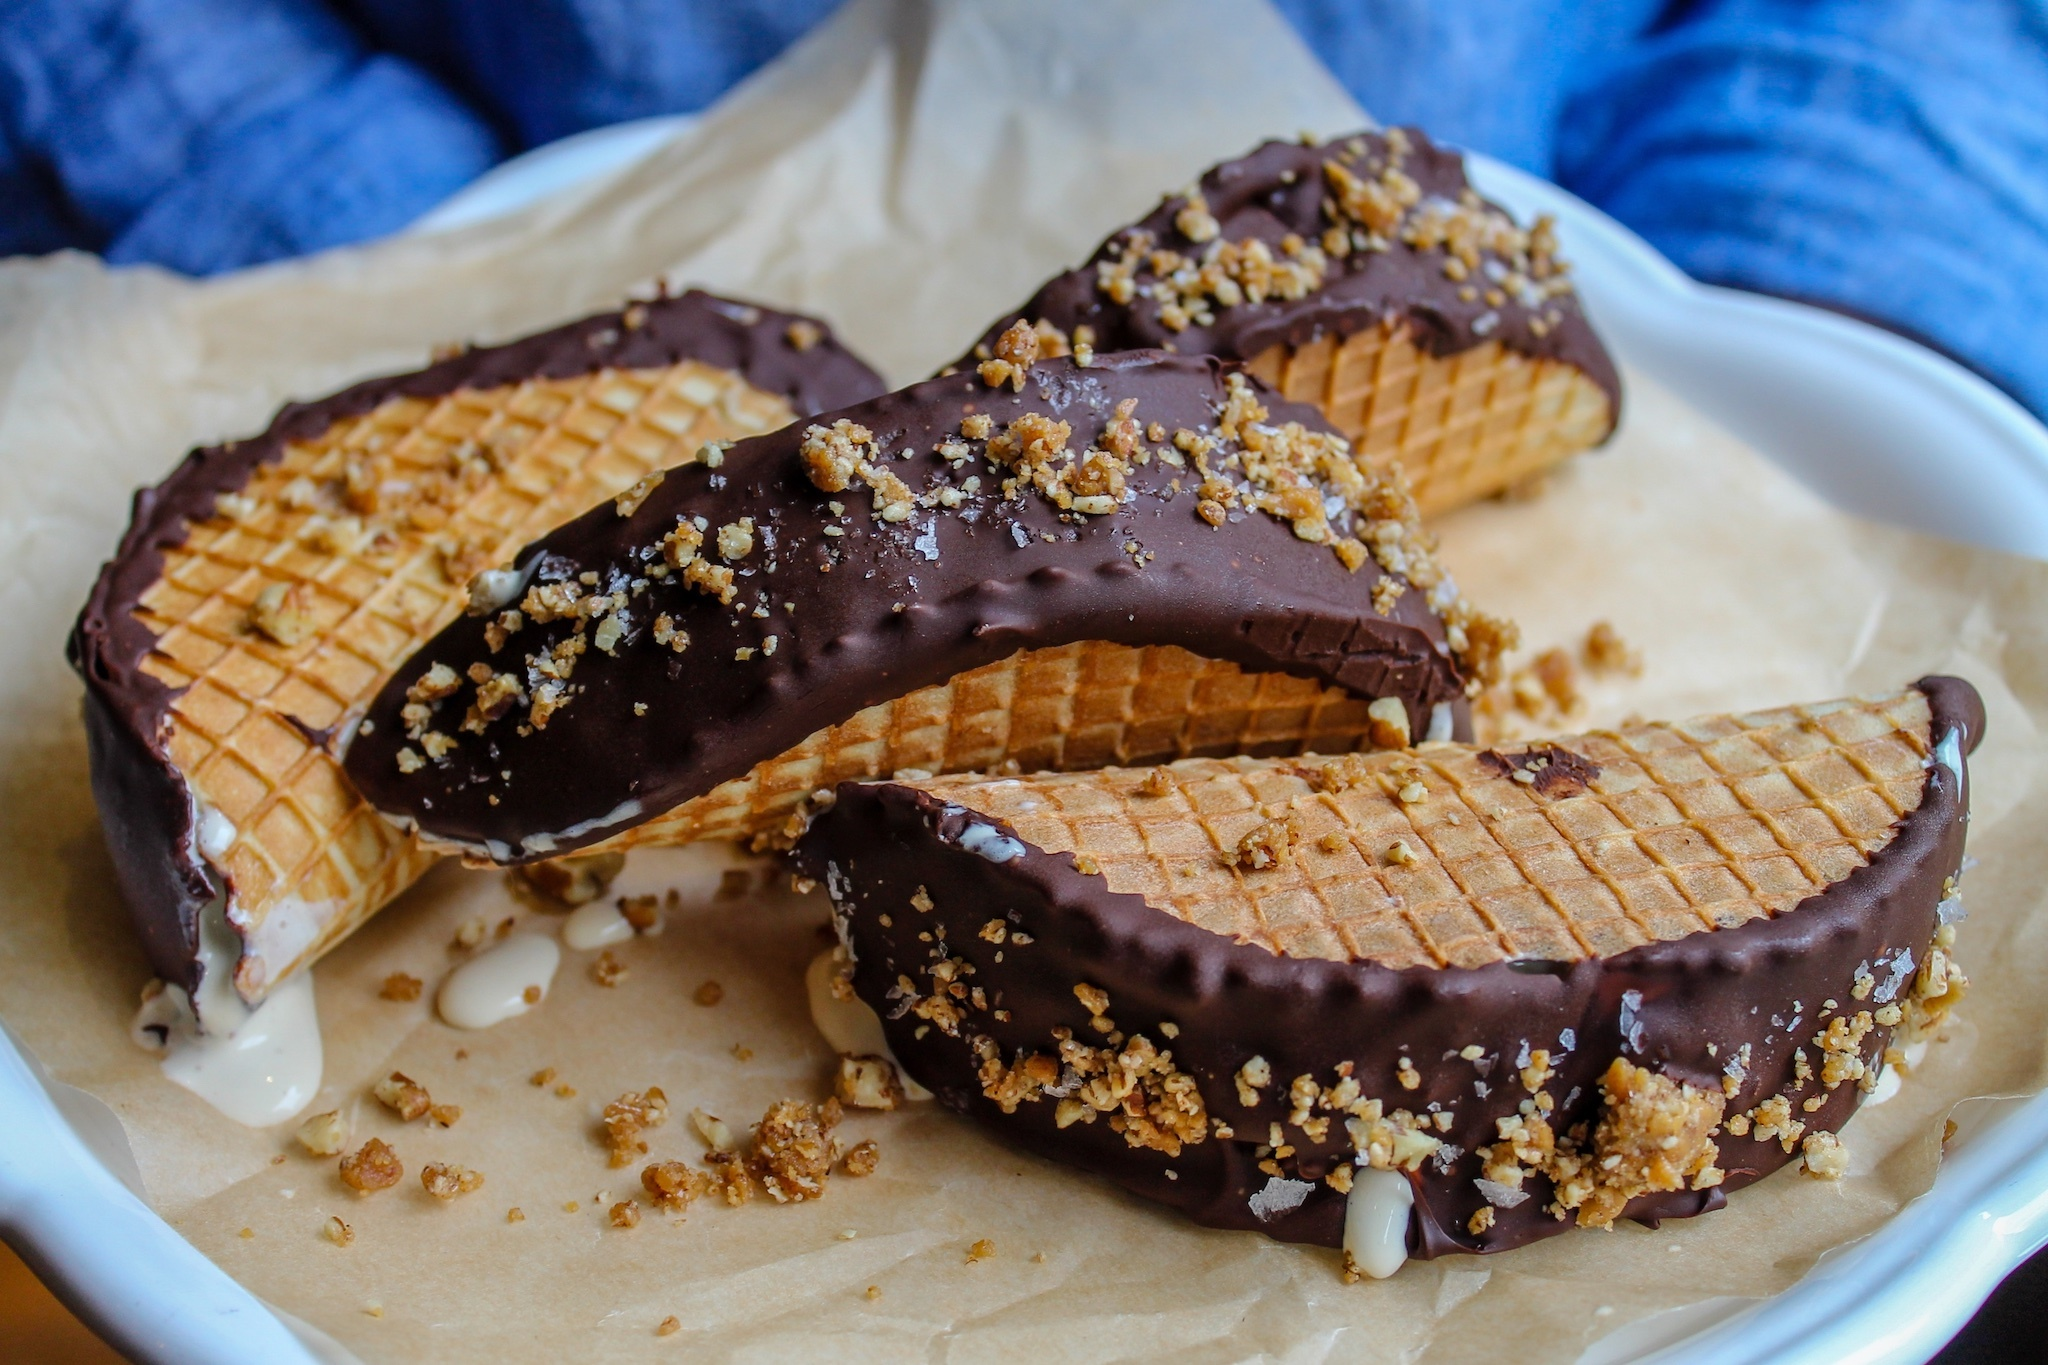 Stuff your face with a Choco Taco